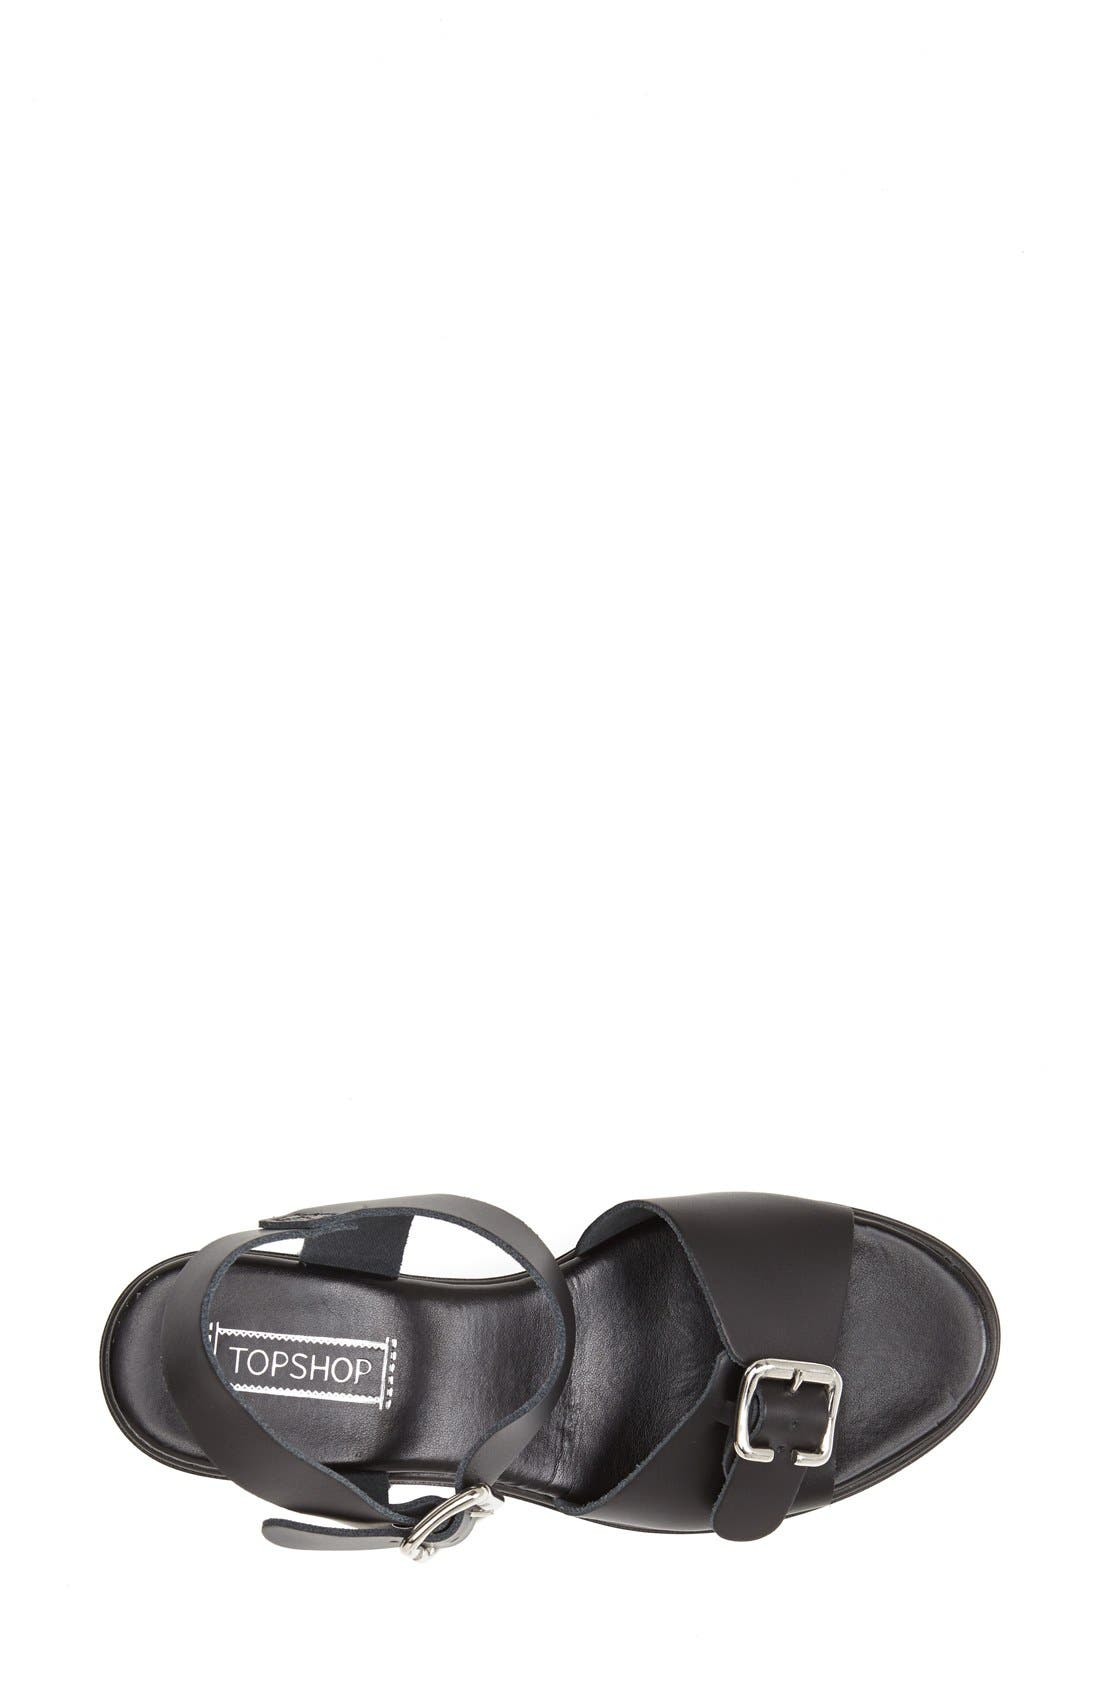 Alternate Image 3  - Topshop 'Niece' Platform Leather Sandal (Women)